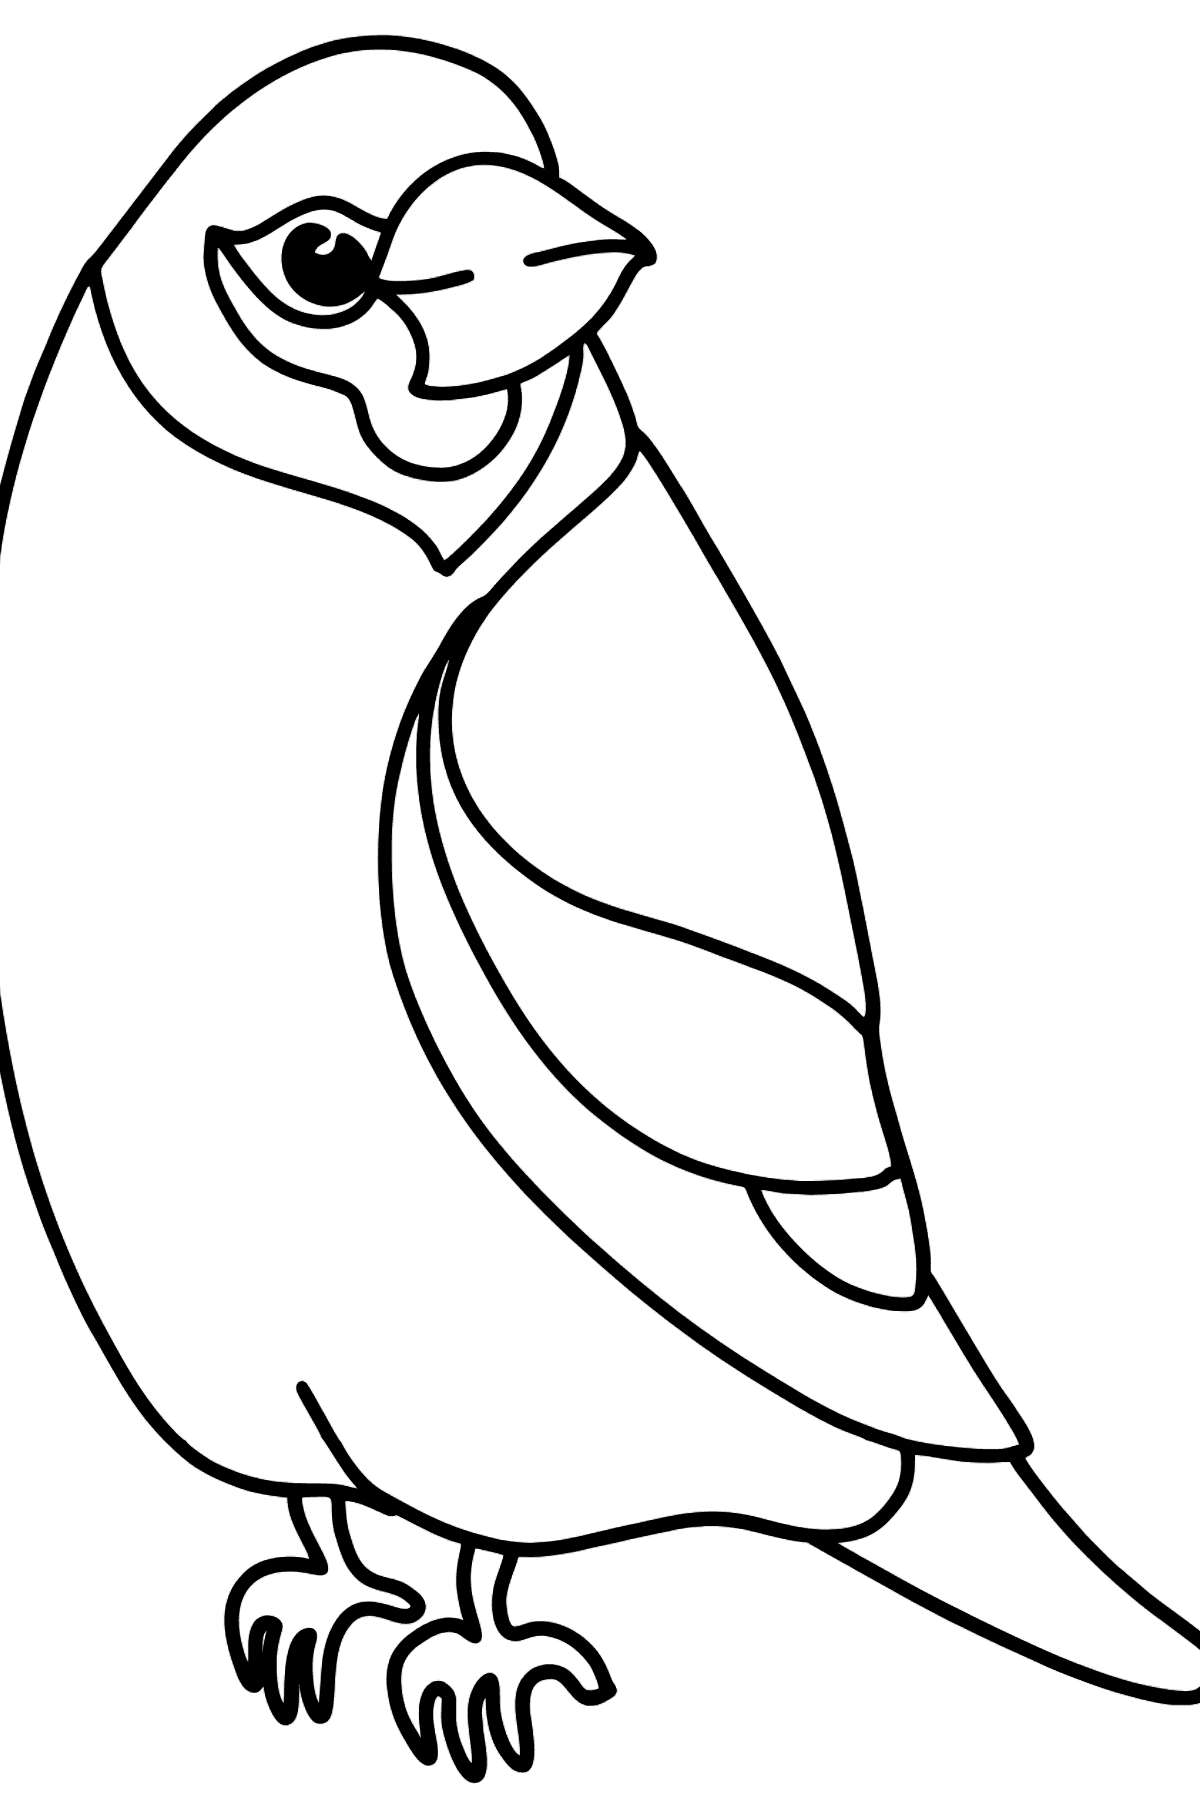 Grosbeak coloring page - Coloring Pages for Kids